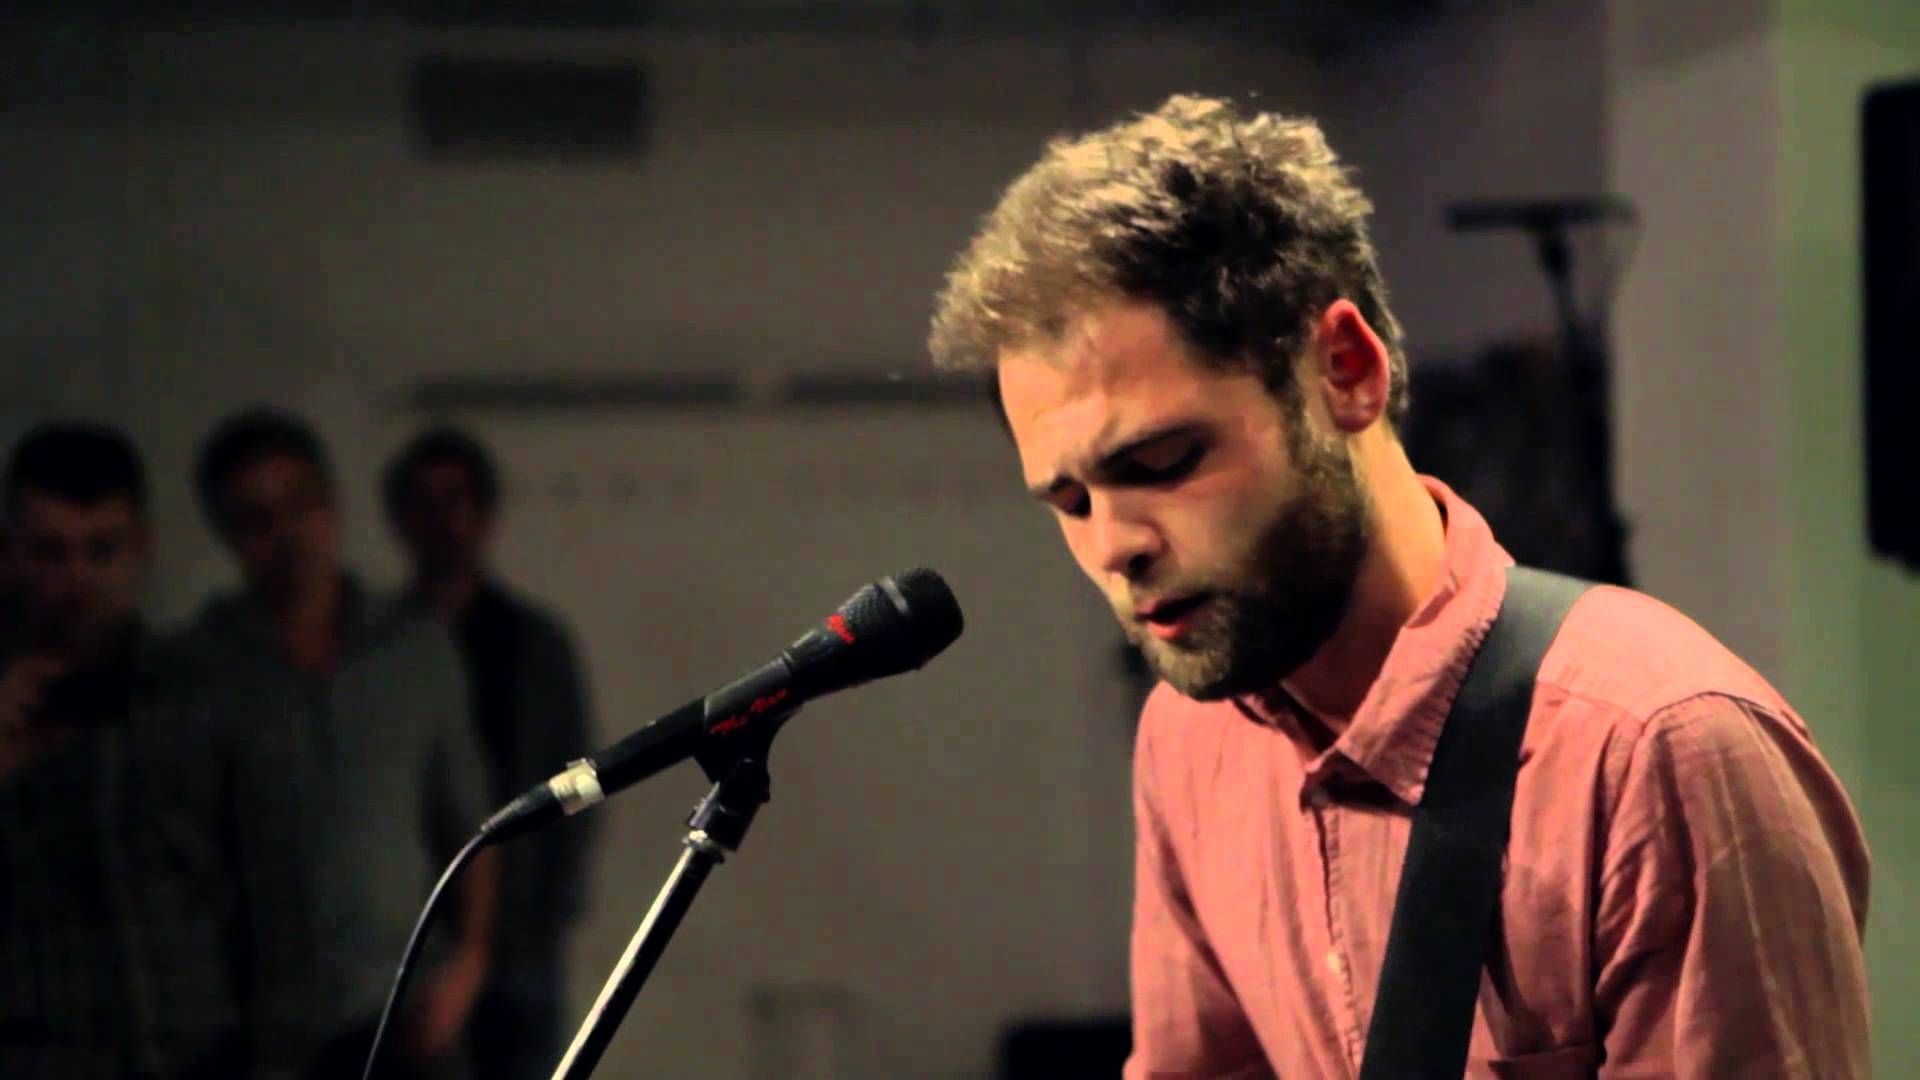 passenger let her go live at spotify amsterdam music to my